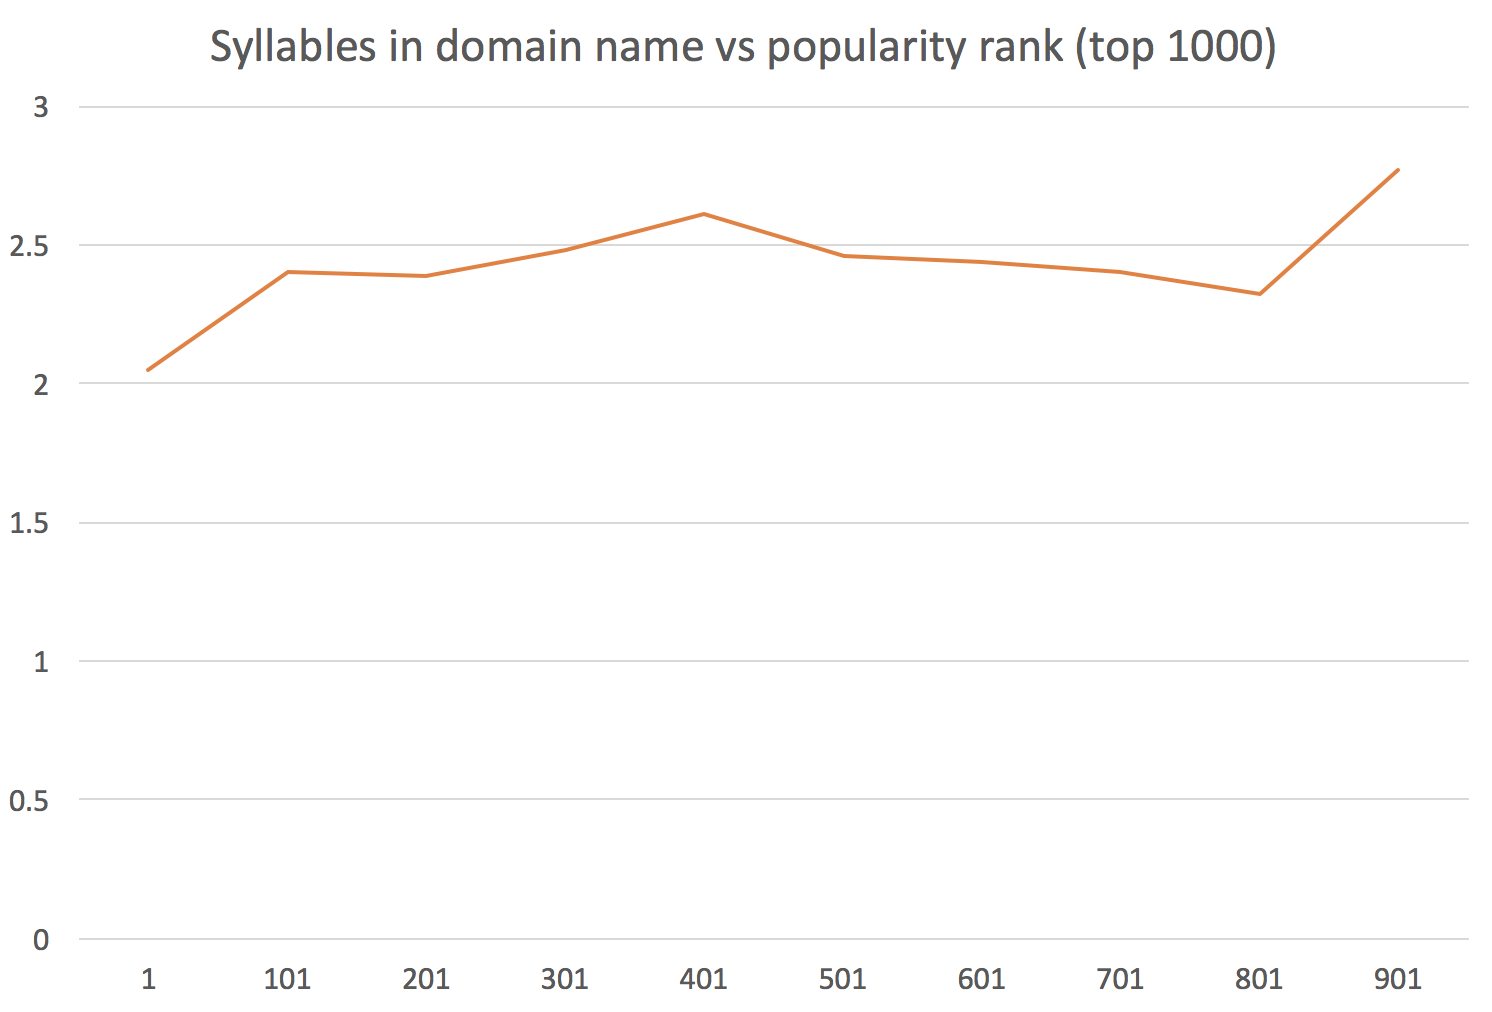 Syllables in domain name vs popularity (top 1000)